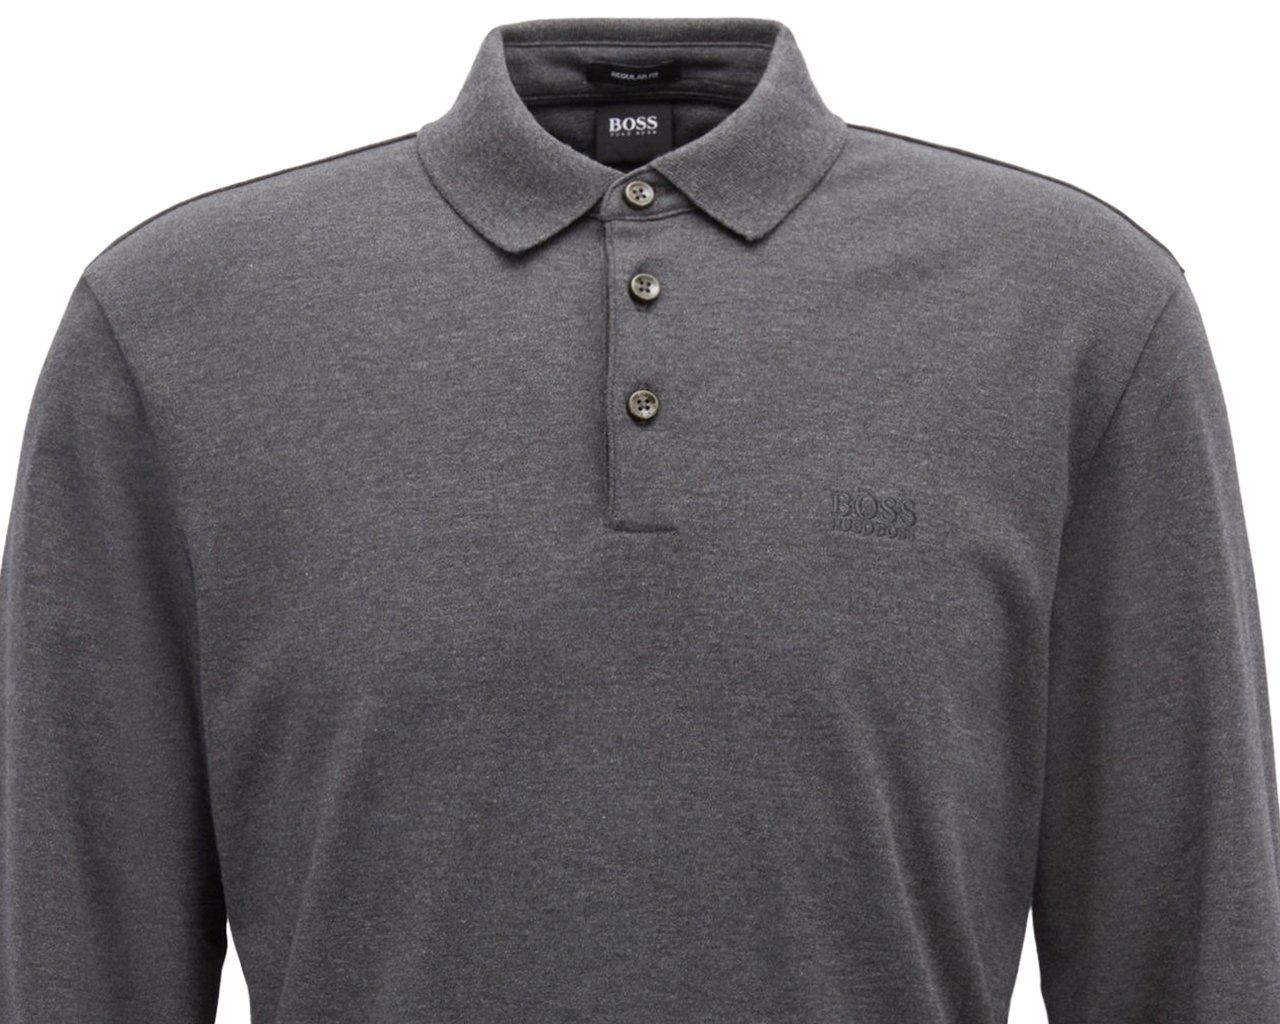 c9c0052a4 BOSS Pado 11 Long Sleeves Polo Shirt Grey in Gray for Men - Lyst